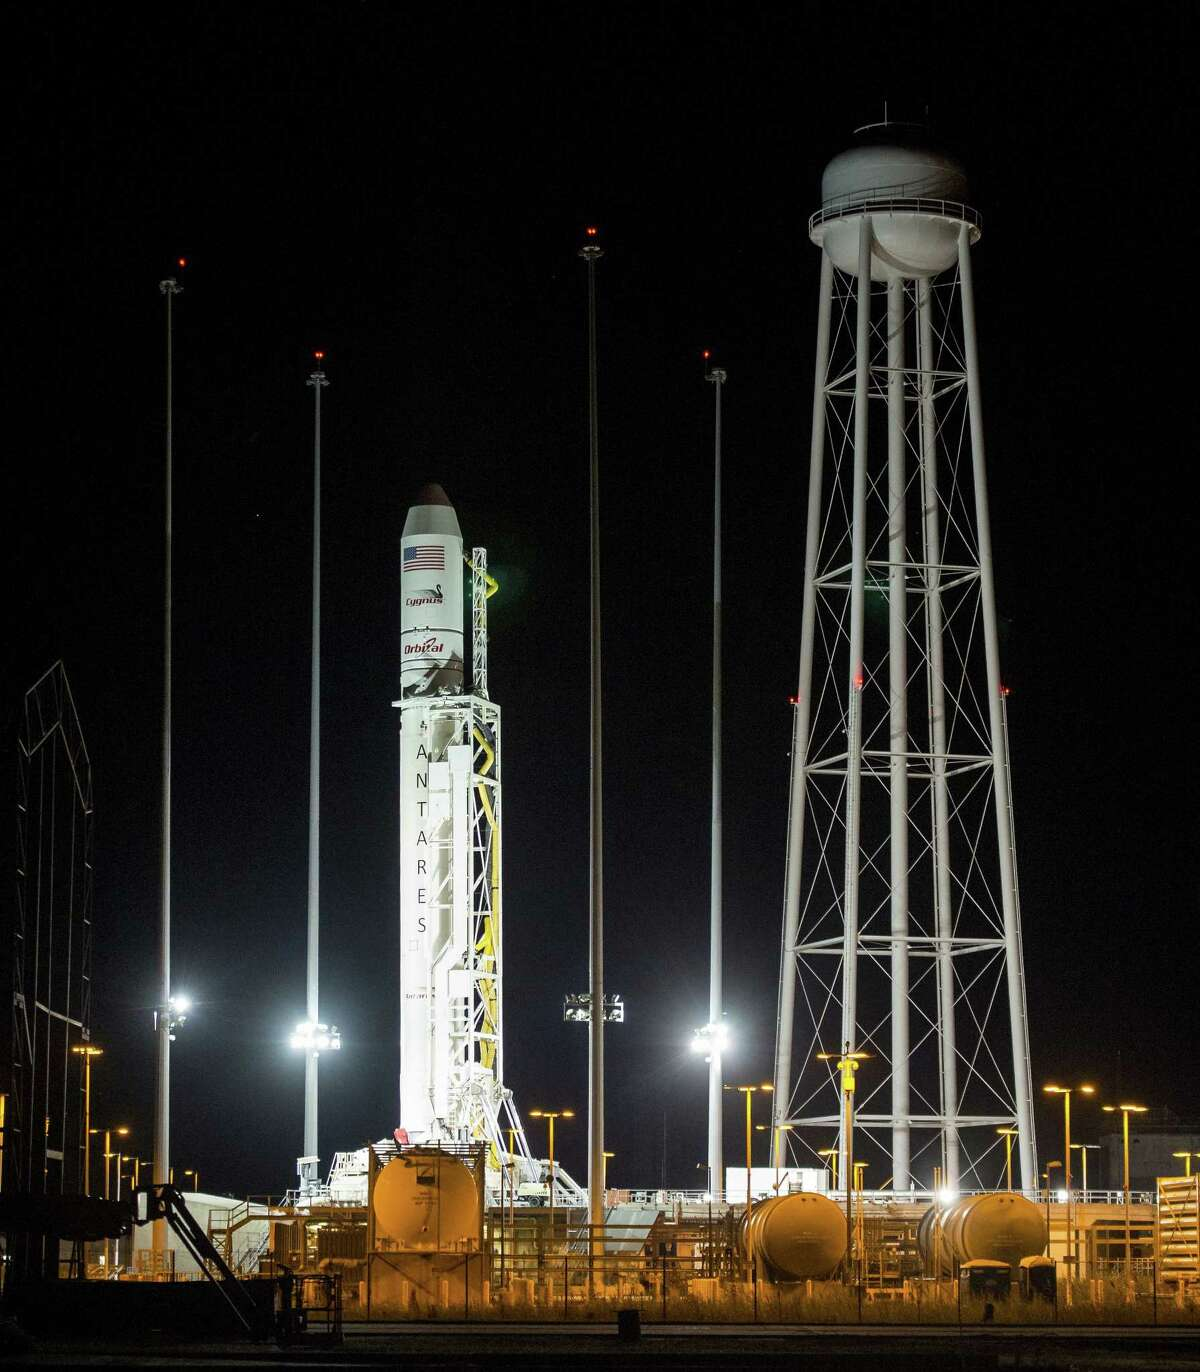 The Orbital Sciences Corporation Antares rocket, with the Cygnus spacecraft onboard, is seen after being raised into vertical position on launch Pad-0A, Oct. 25, 2014, at NASA's Wallops Flight Facility in Virginia.